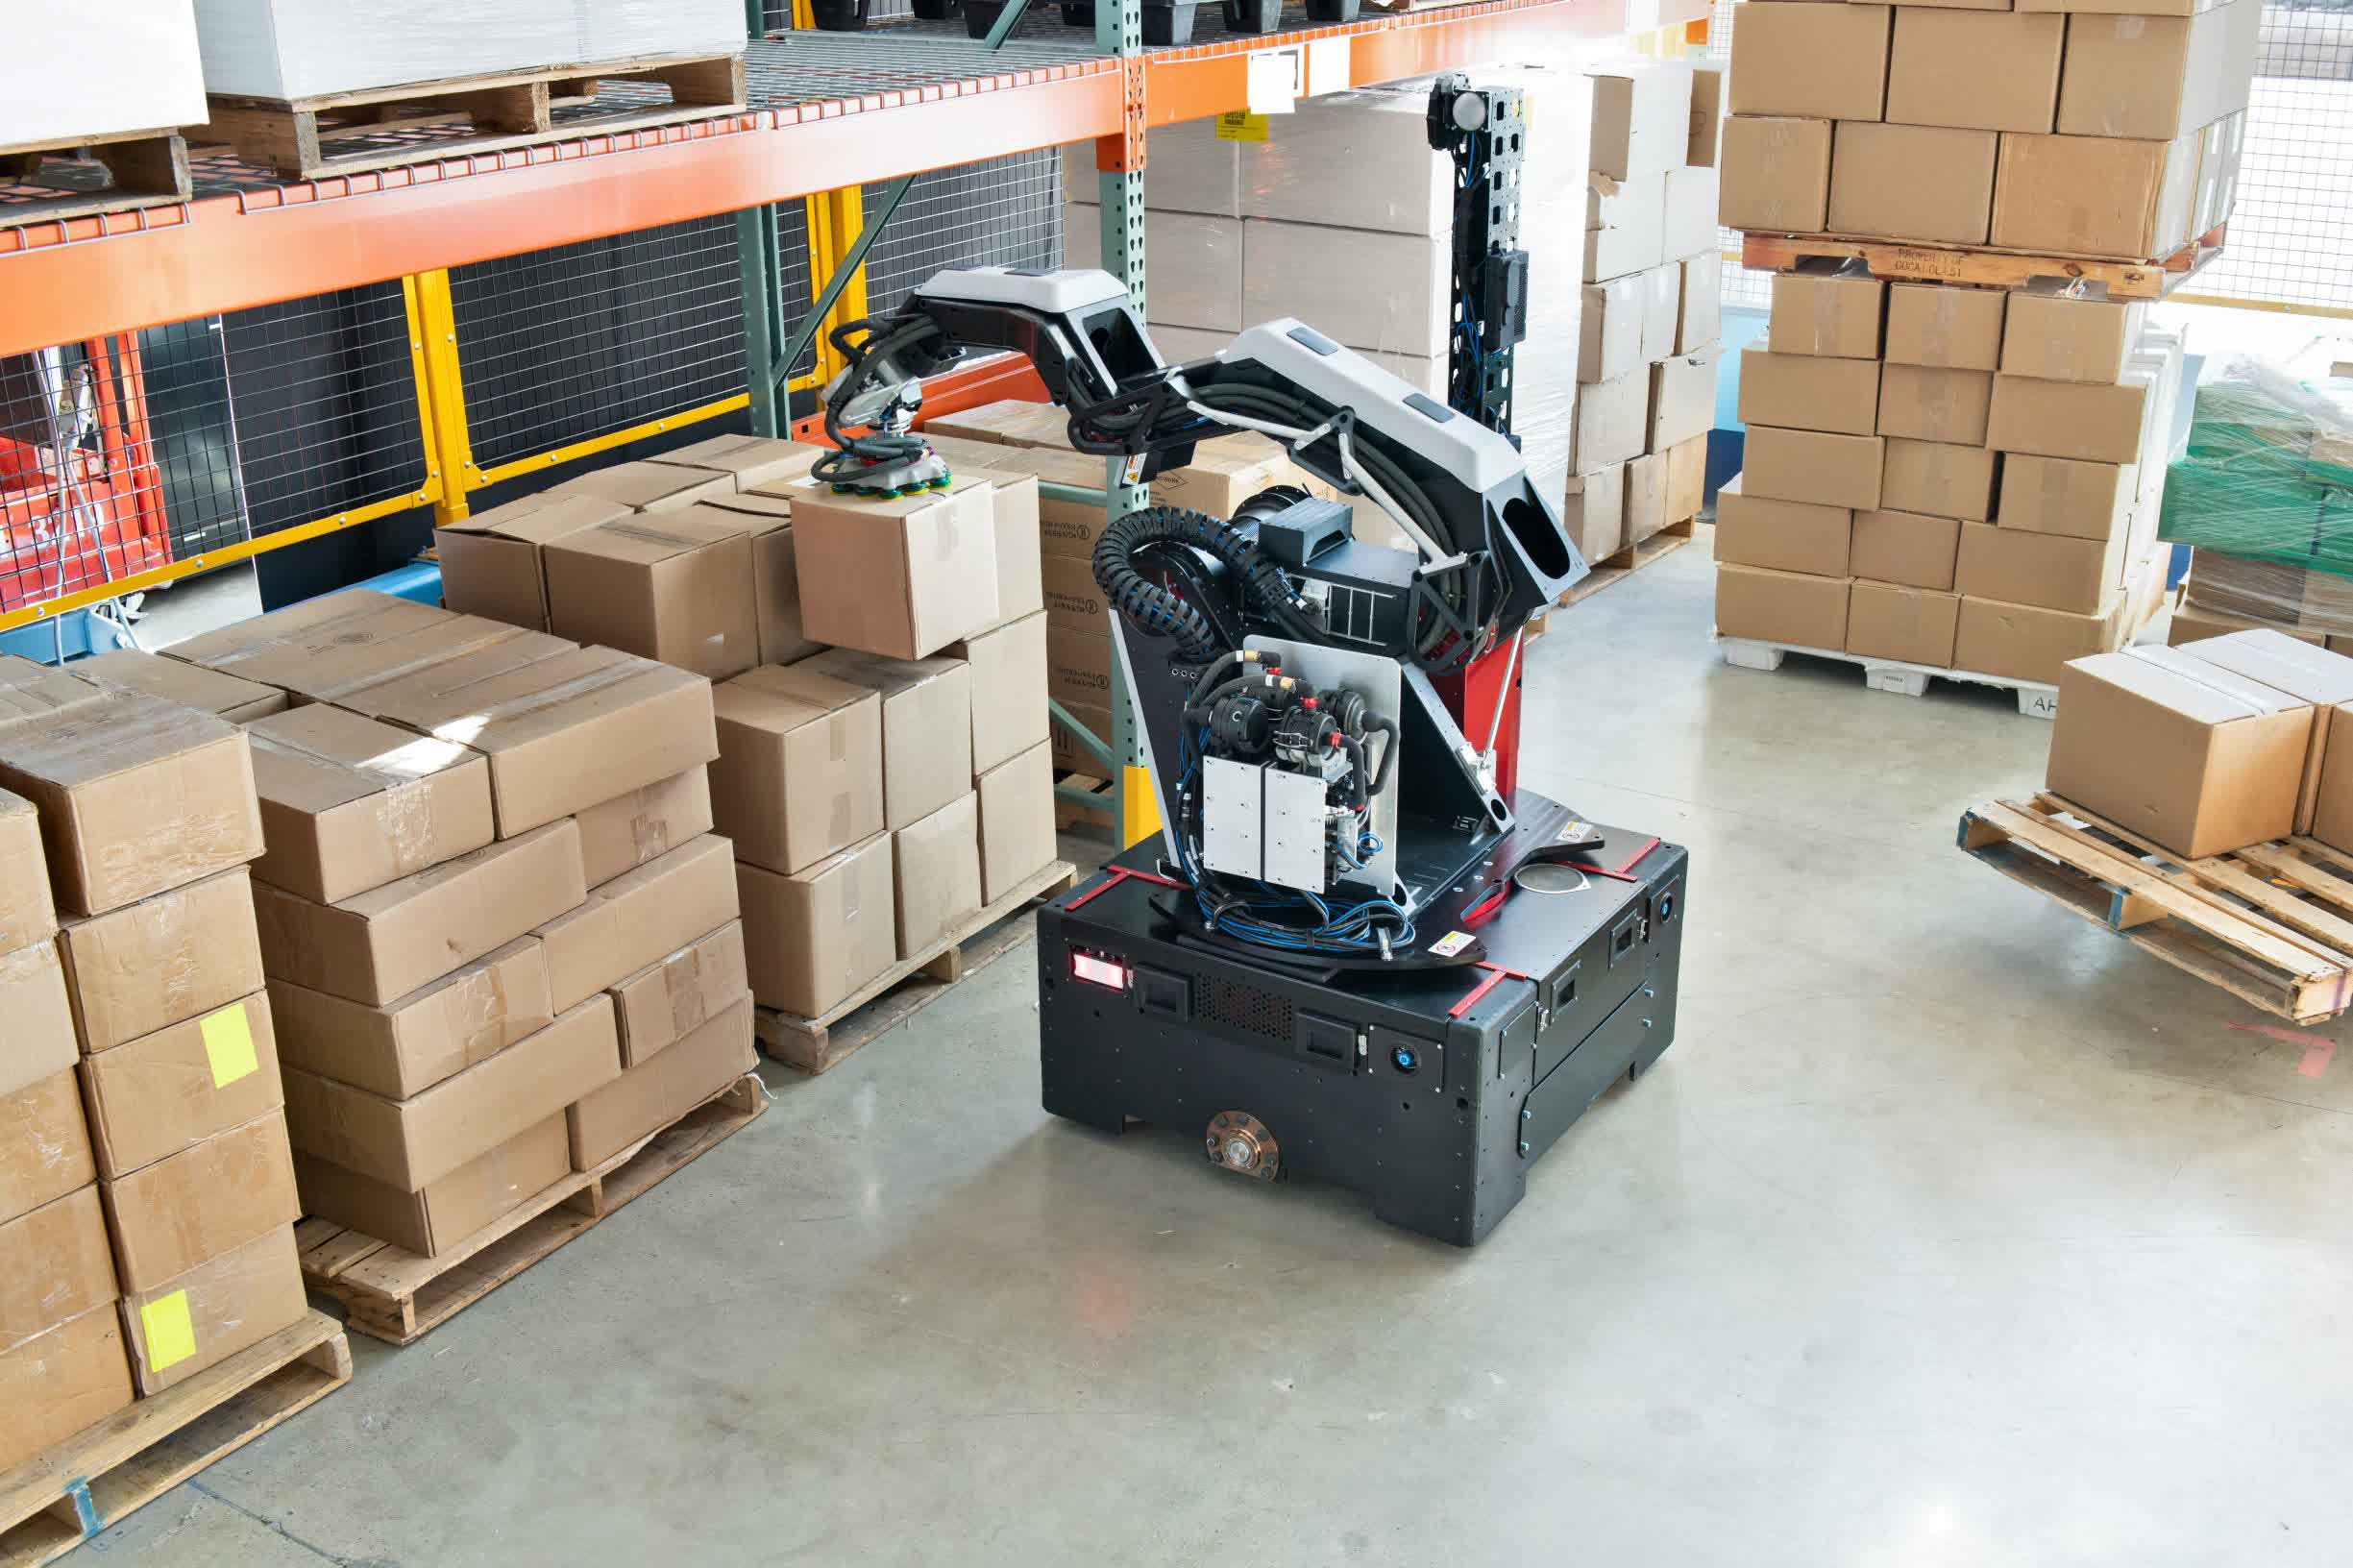 Boston Dynamics' latest creation is a robotic warehouse assistant named Stretch